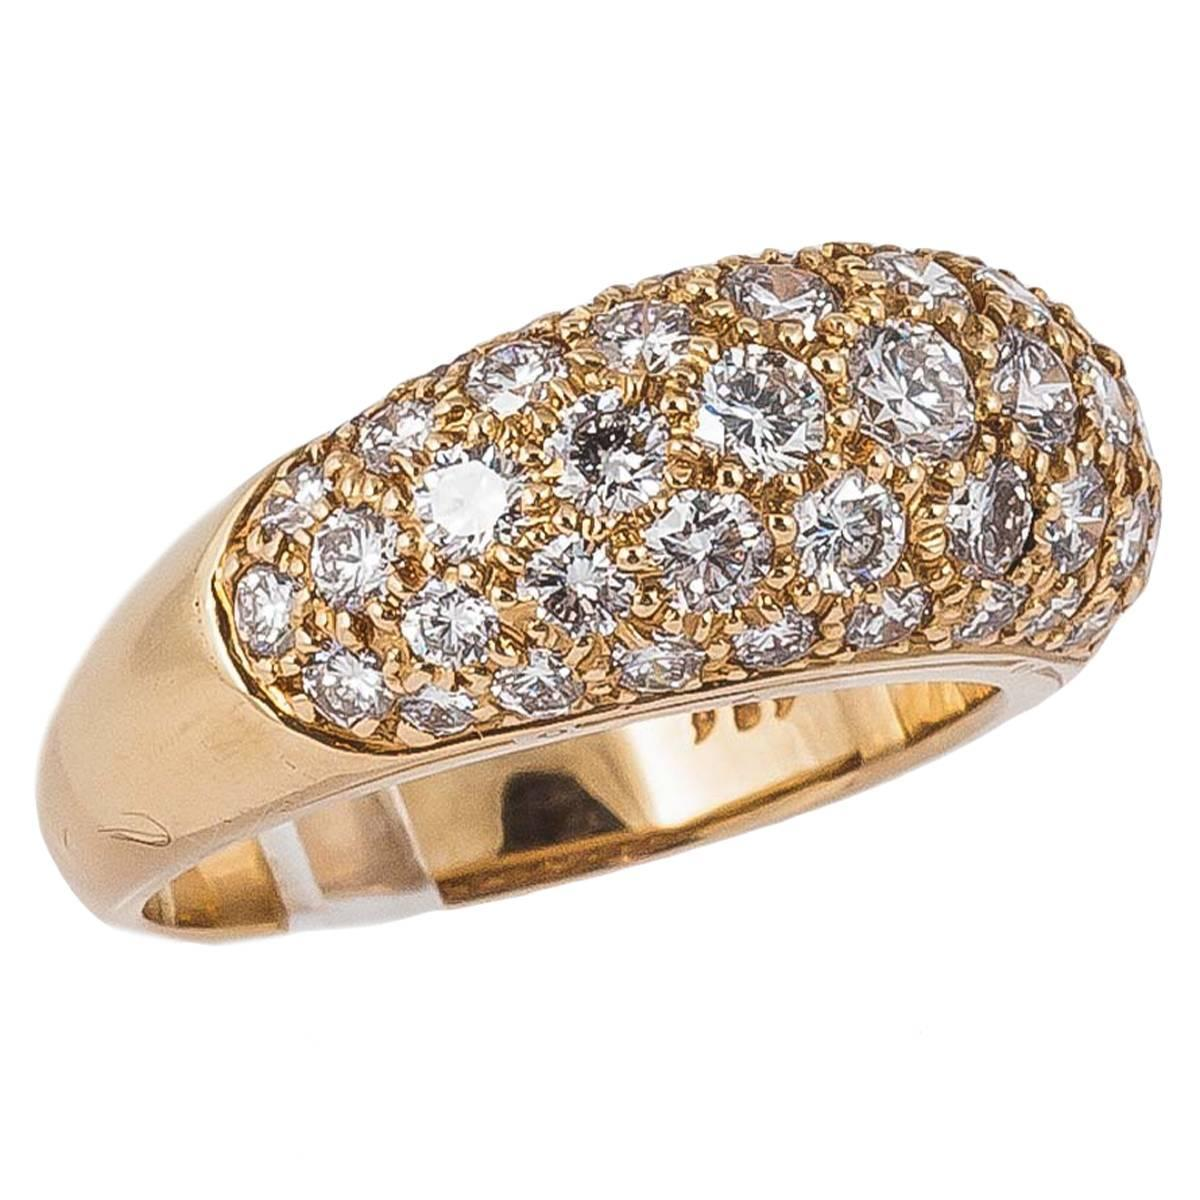 oscar heyman pave gold dress ring for sale at 1stdibs